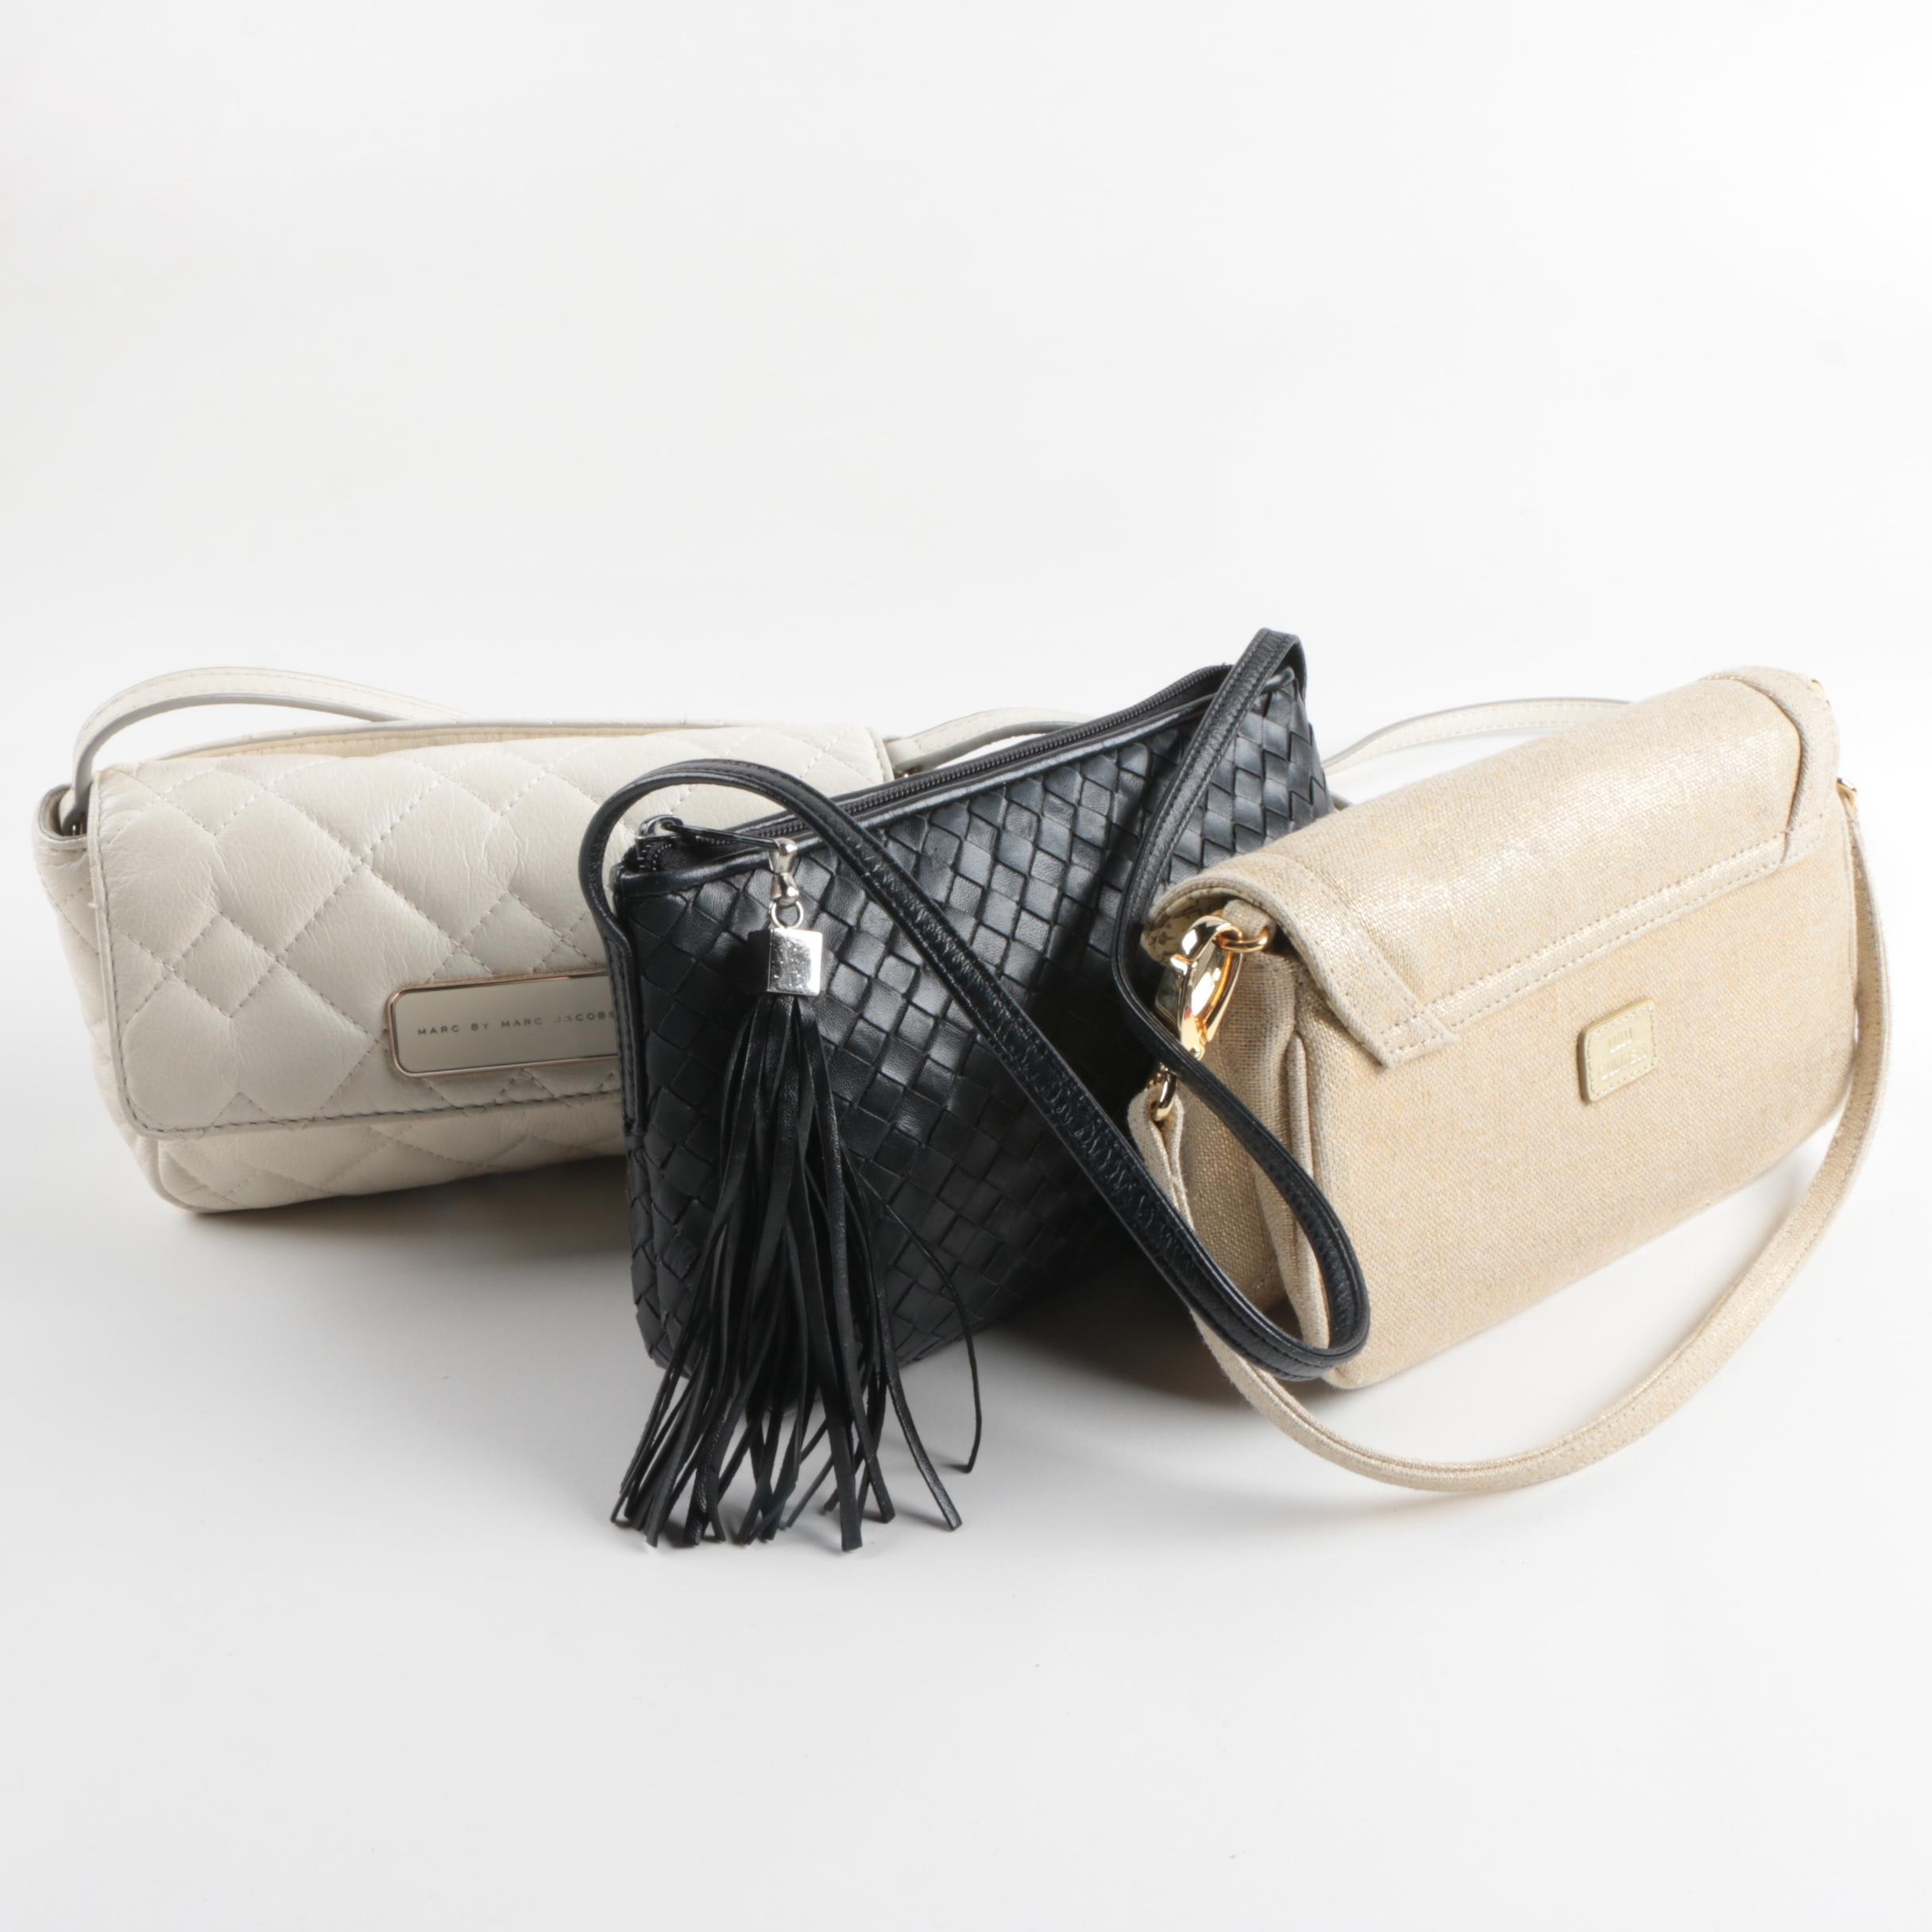 Handbags Including MARC by Marc Jacobs and Lulu Guinness